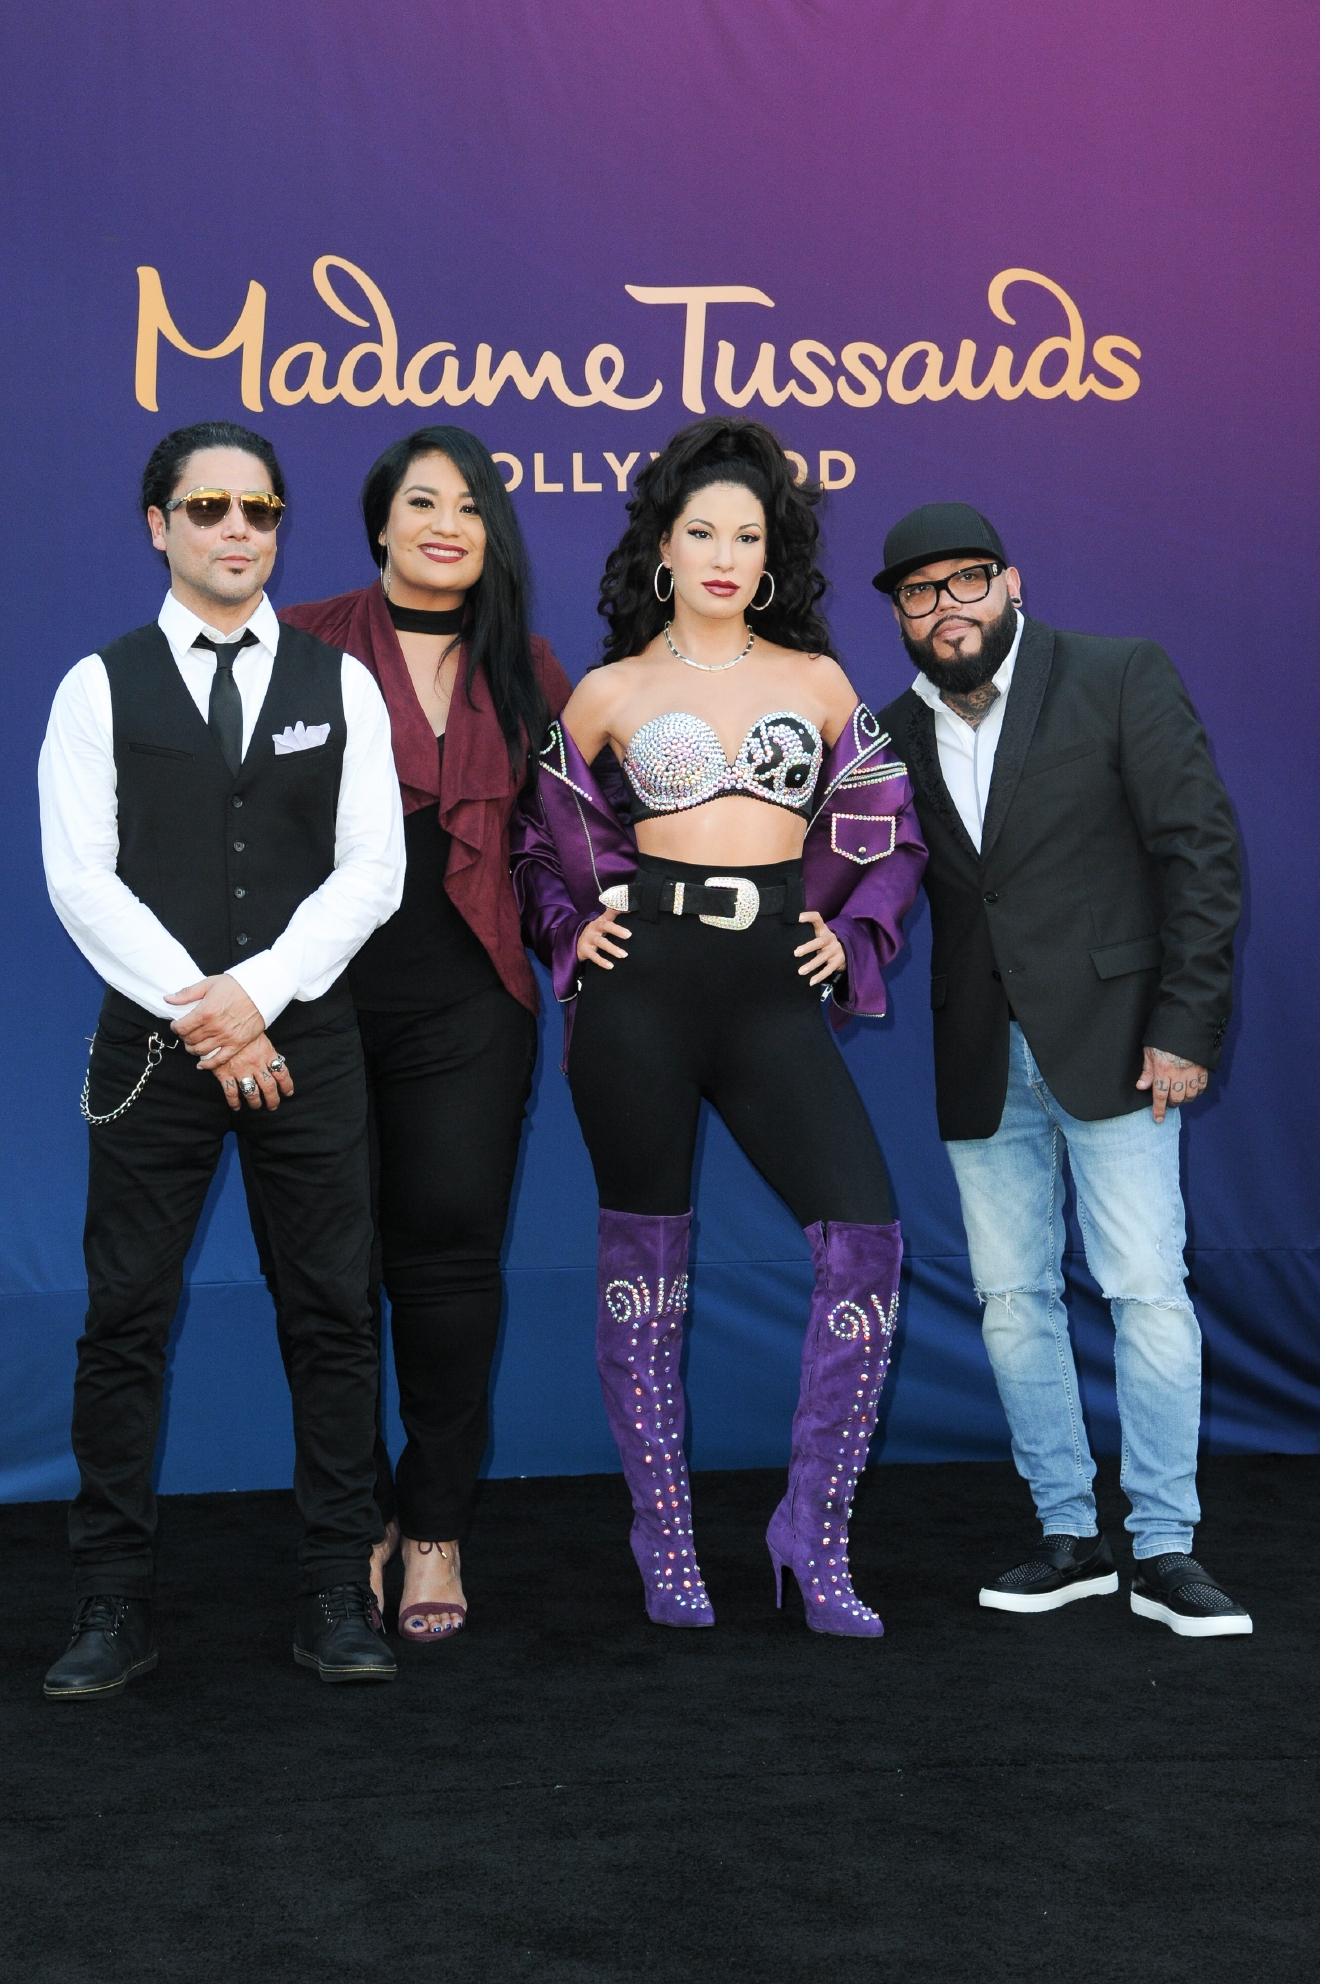 Chris Perez, from left, Suzette Quintanilla and A.B. Quintanilla attend the unveiling of a wax figure of Selena Quintanilla at Madame Tussauds Hollywood on Tuesday, Aug. 30, 2016, in Los Angeles. (Photo by Richard Shotwell/Invision/AP)